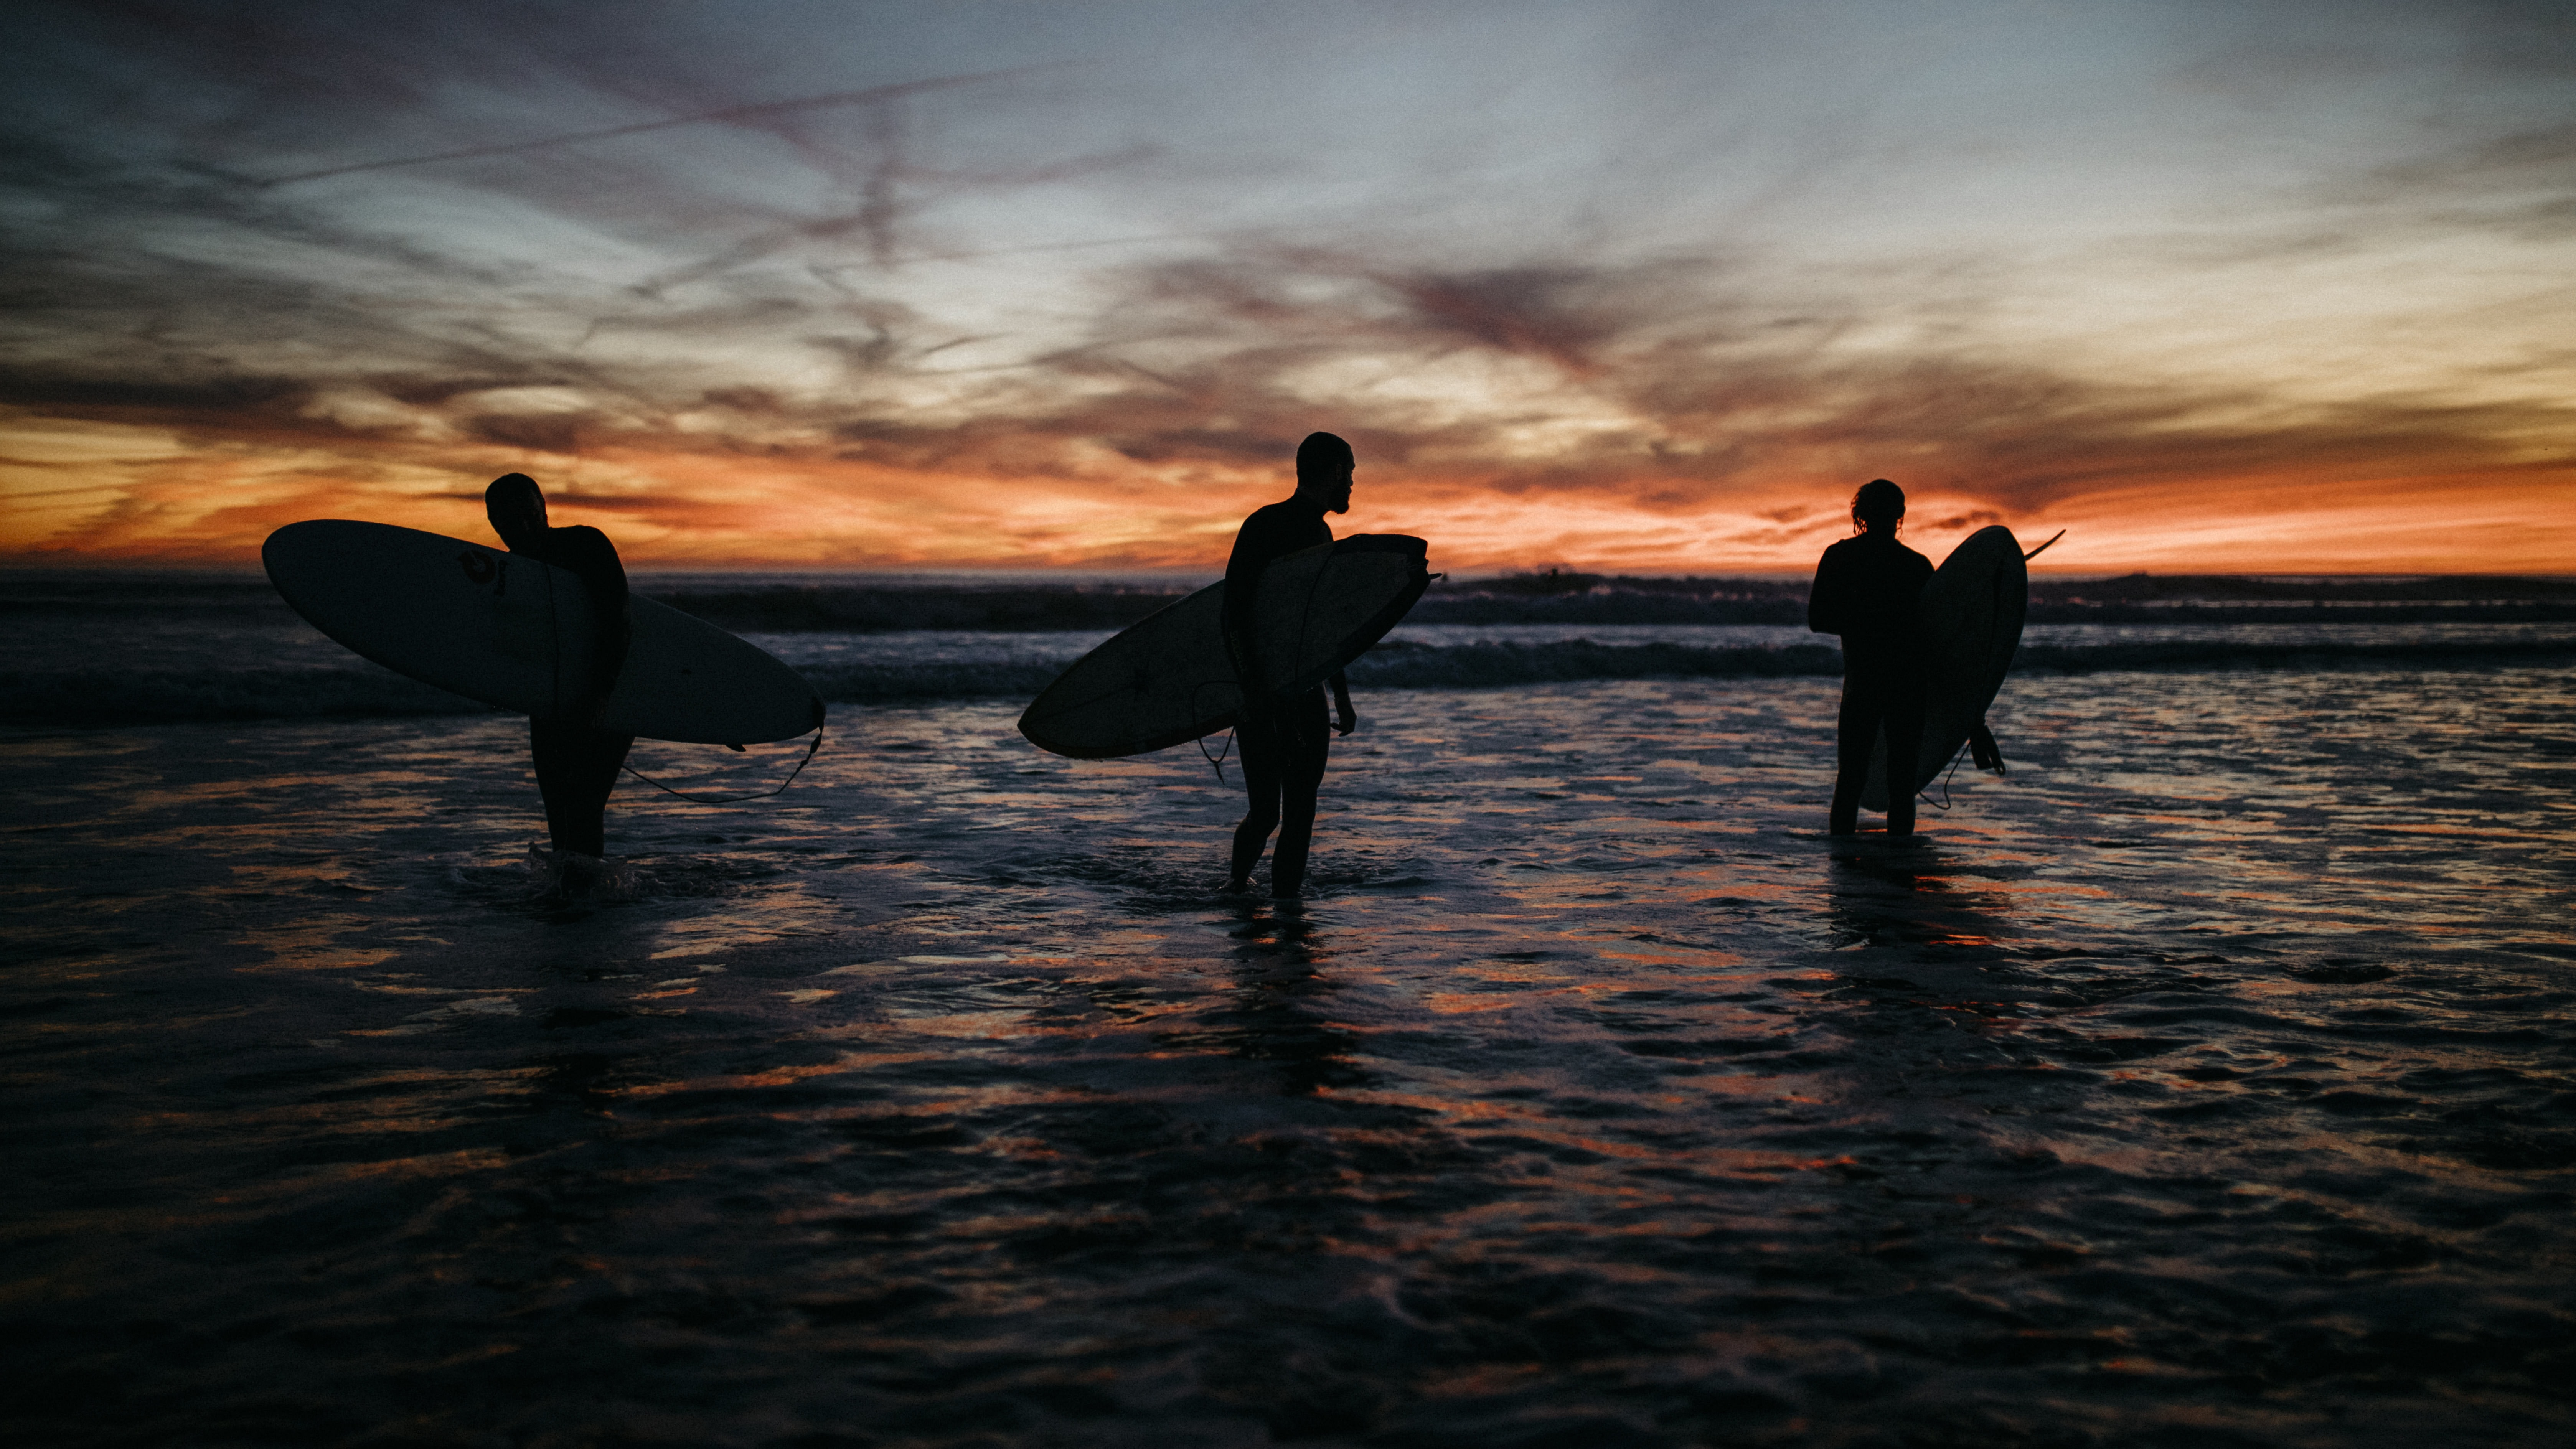 three people holding surf boards in ocean